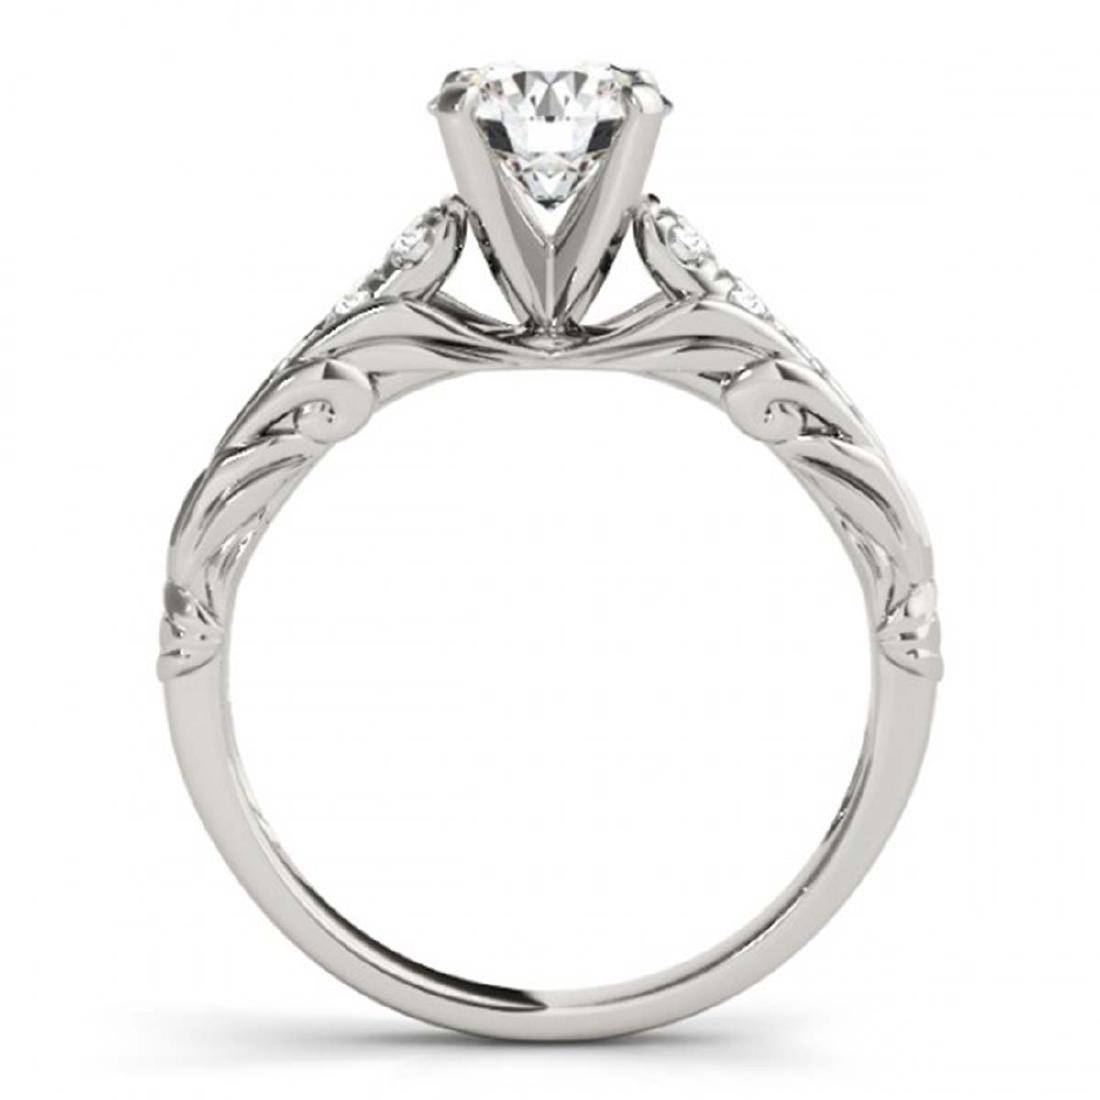 0.95 ctw VS/SI Diamond Solitaire Ring 14K White Gold - - 2